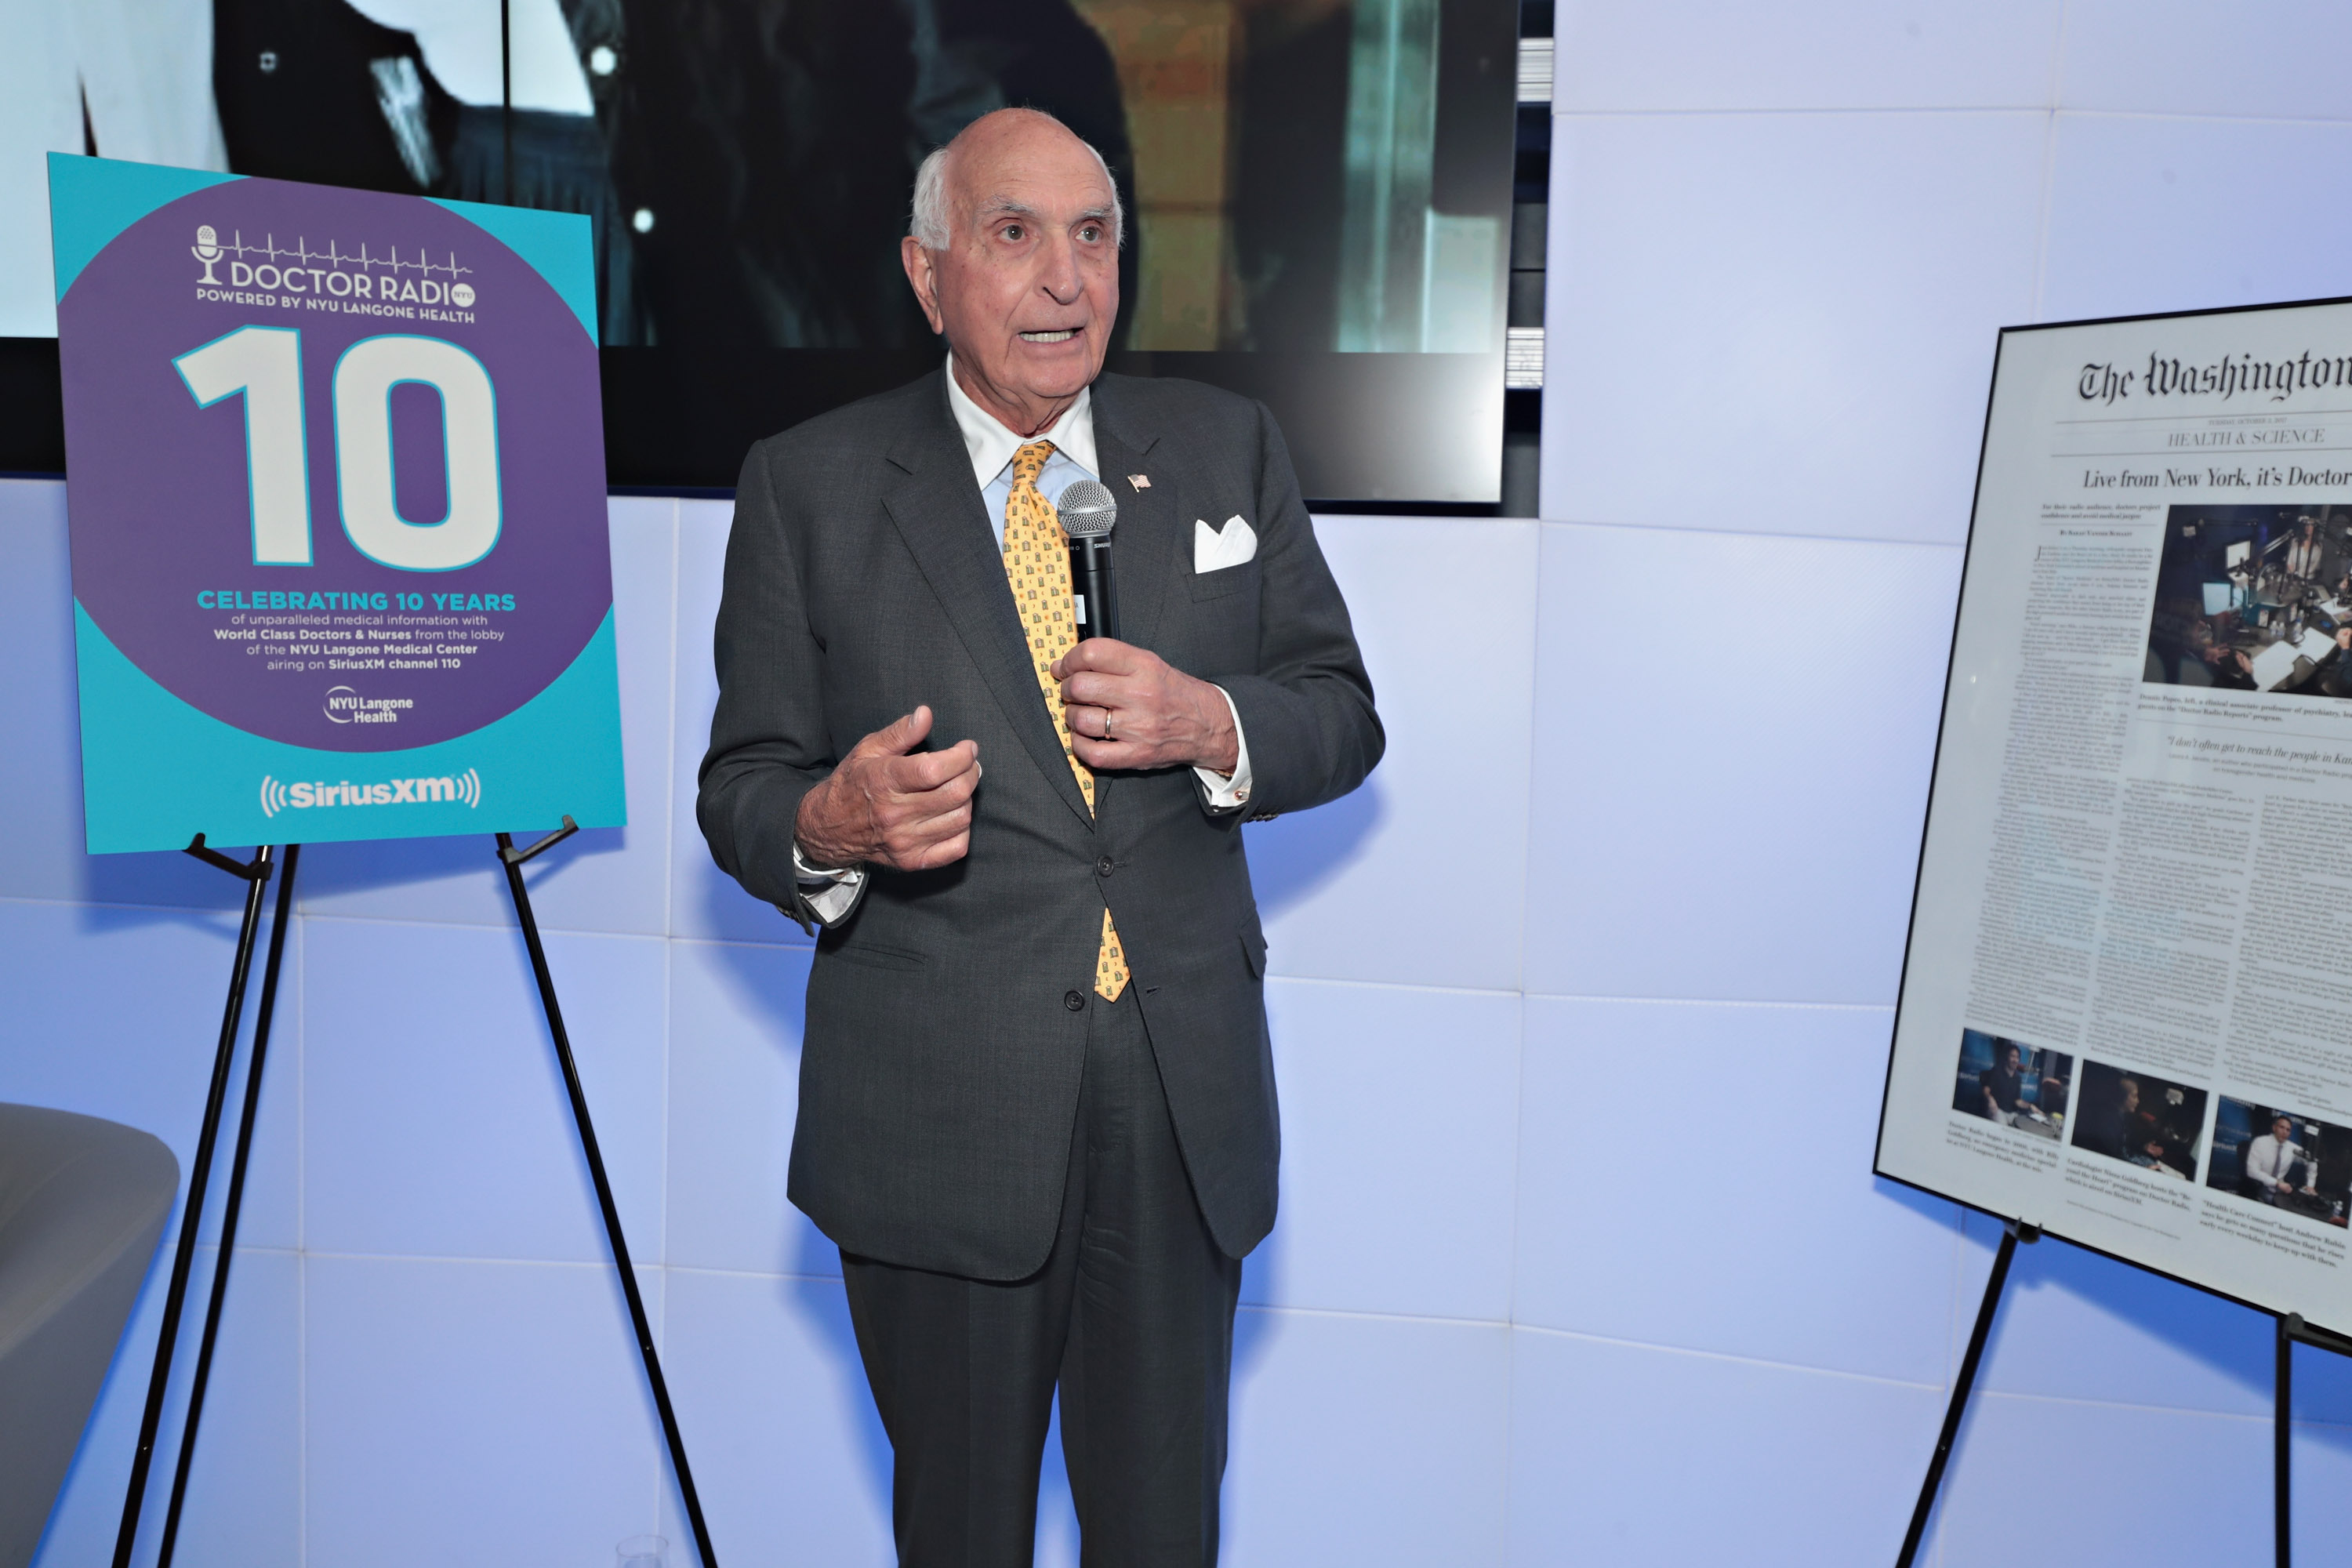 SiriusXM And NYU Langone Health Celebrate The 10th Year Anniversary Of The Doctor Radio Channel At The SiriusXM Studios In New York City